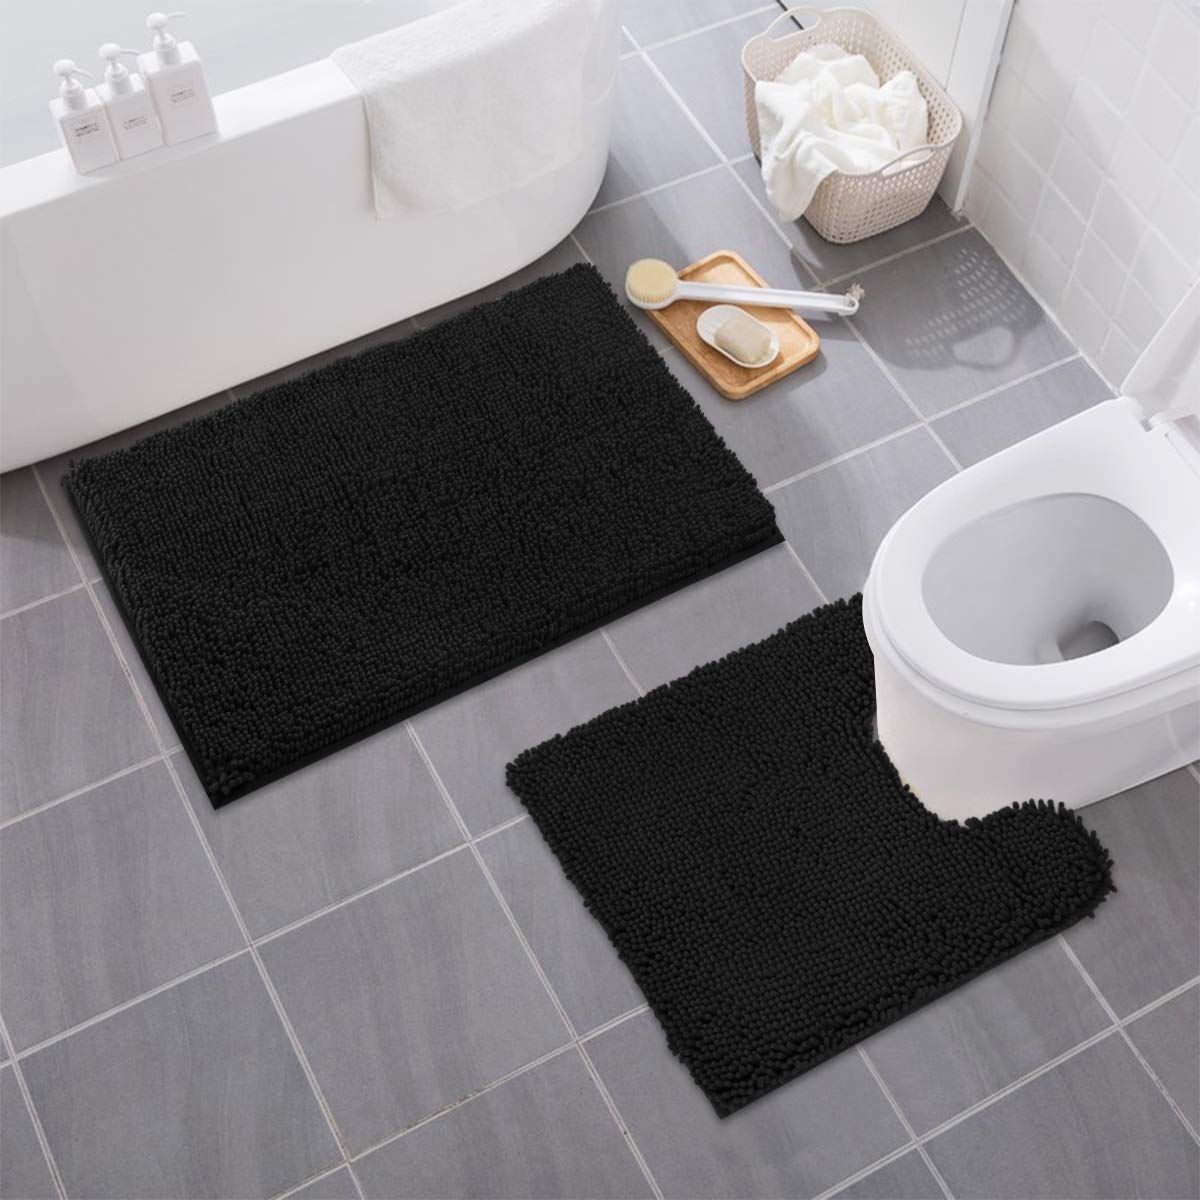 MAYSHINE Bathroom Rug Toilet Sets and Shaggy Non Slip Machine Washable Soft Microfiber Bath Contour Mat Dark Gray, 32x20 // 20x20 Inches U-Shaped